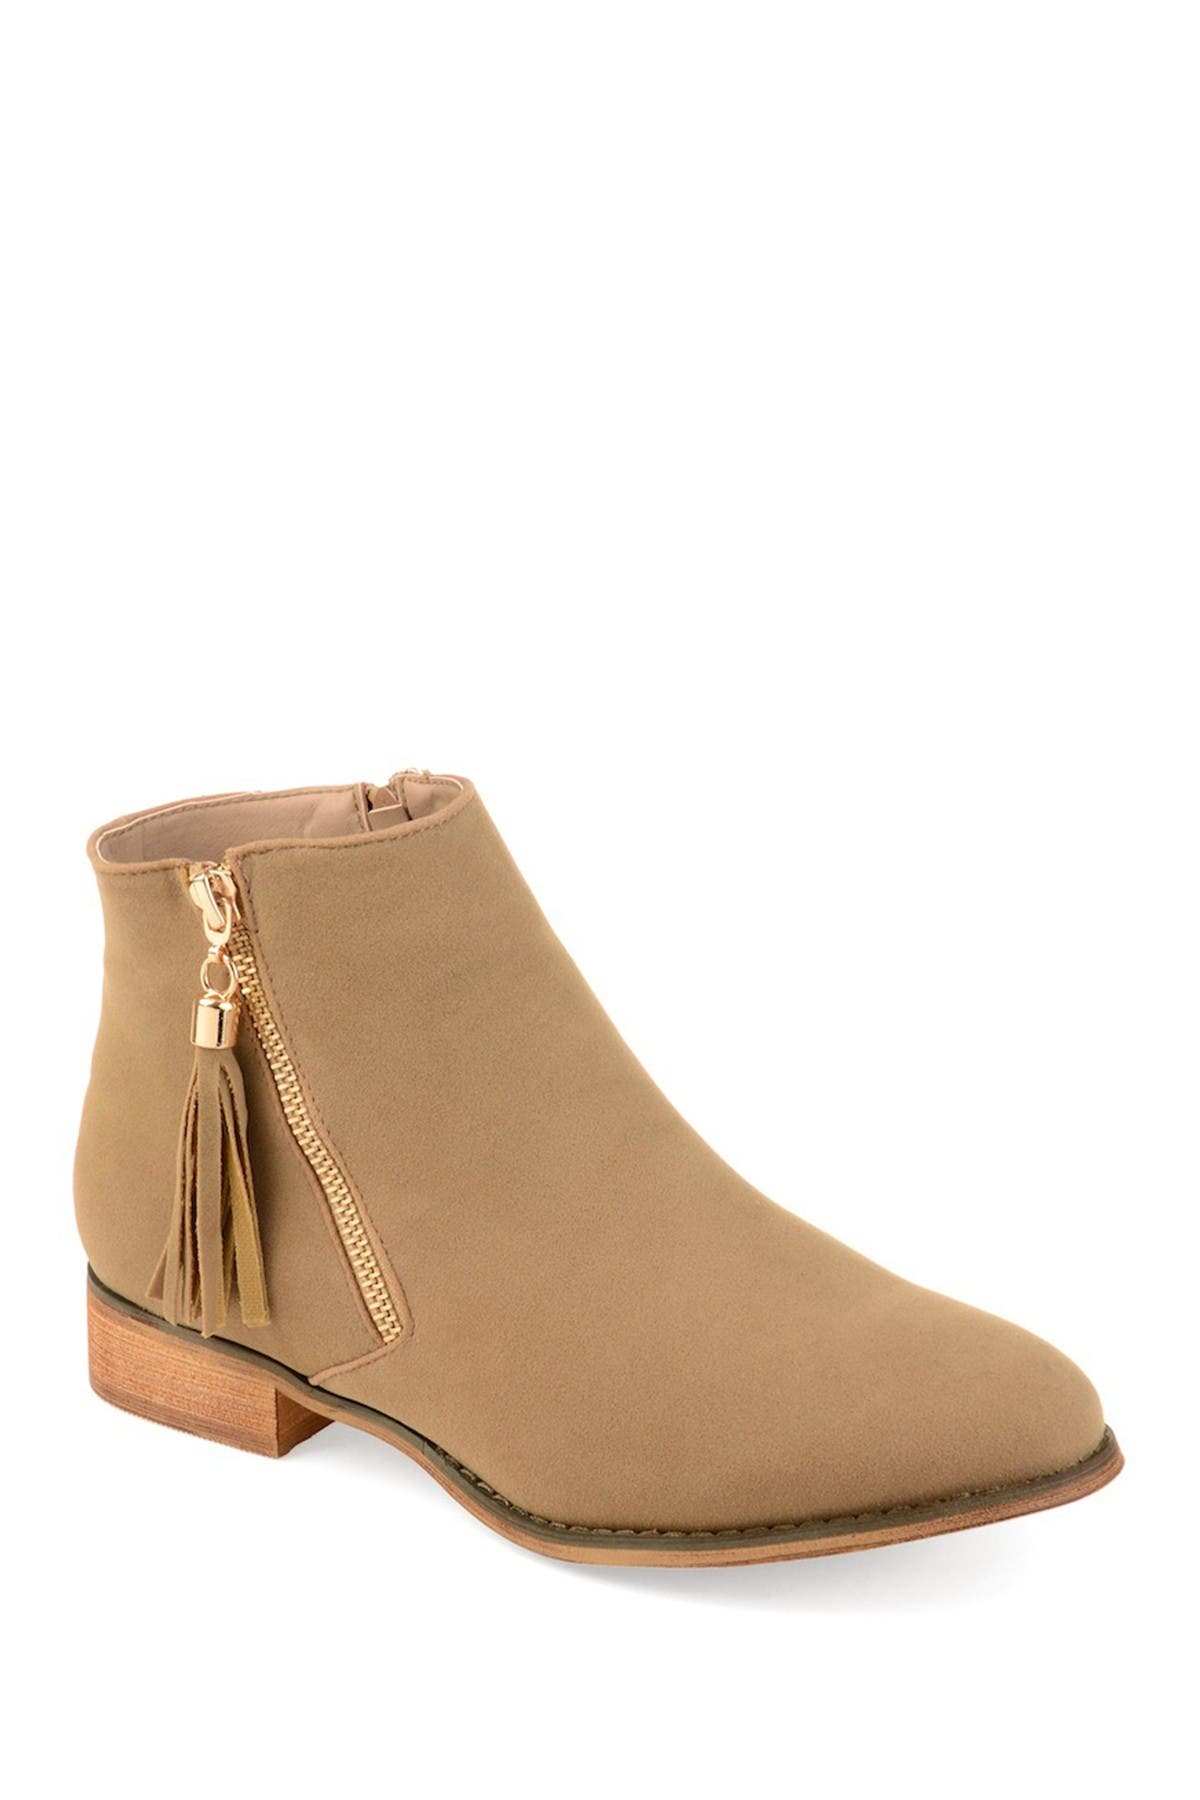 Image of JOURNEE Collection Trista Tassel Ankle Bootie